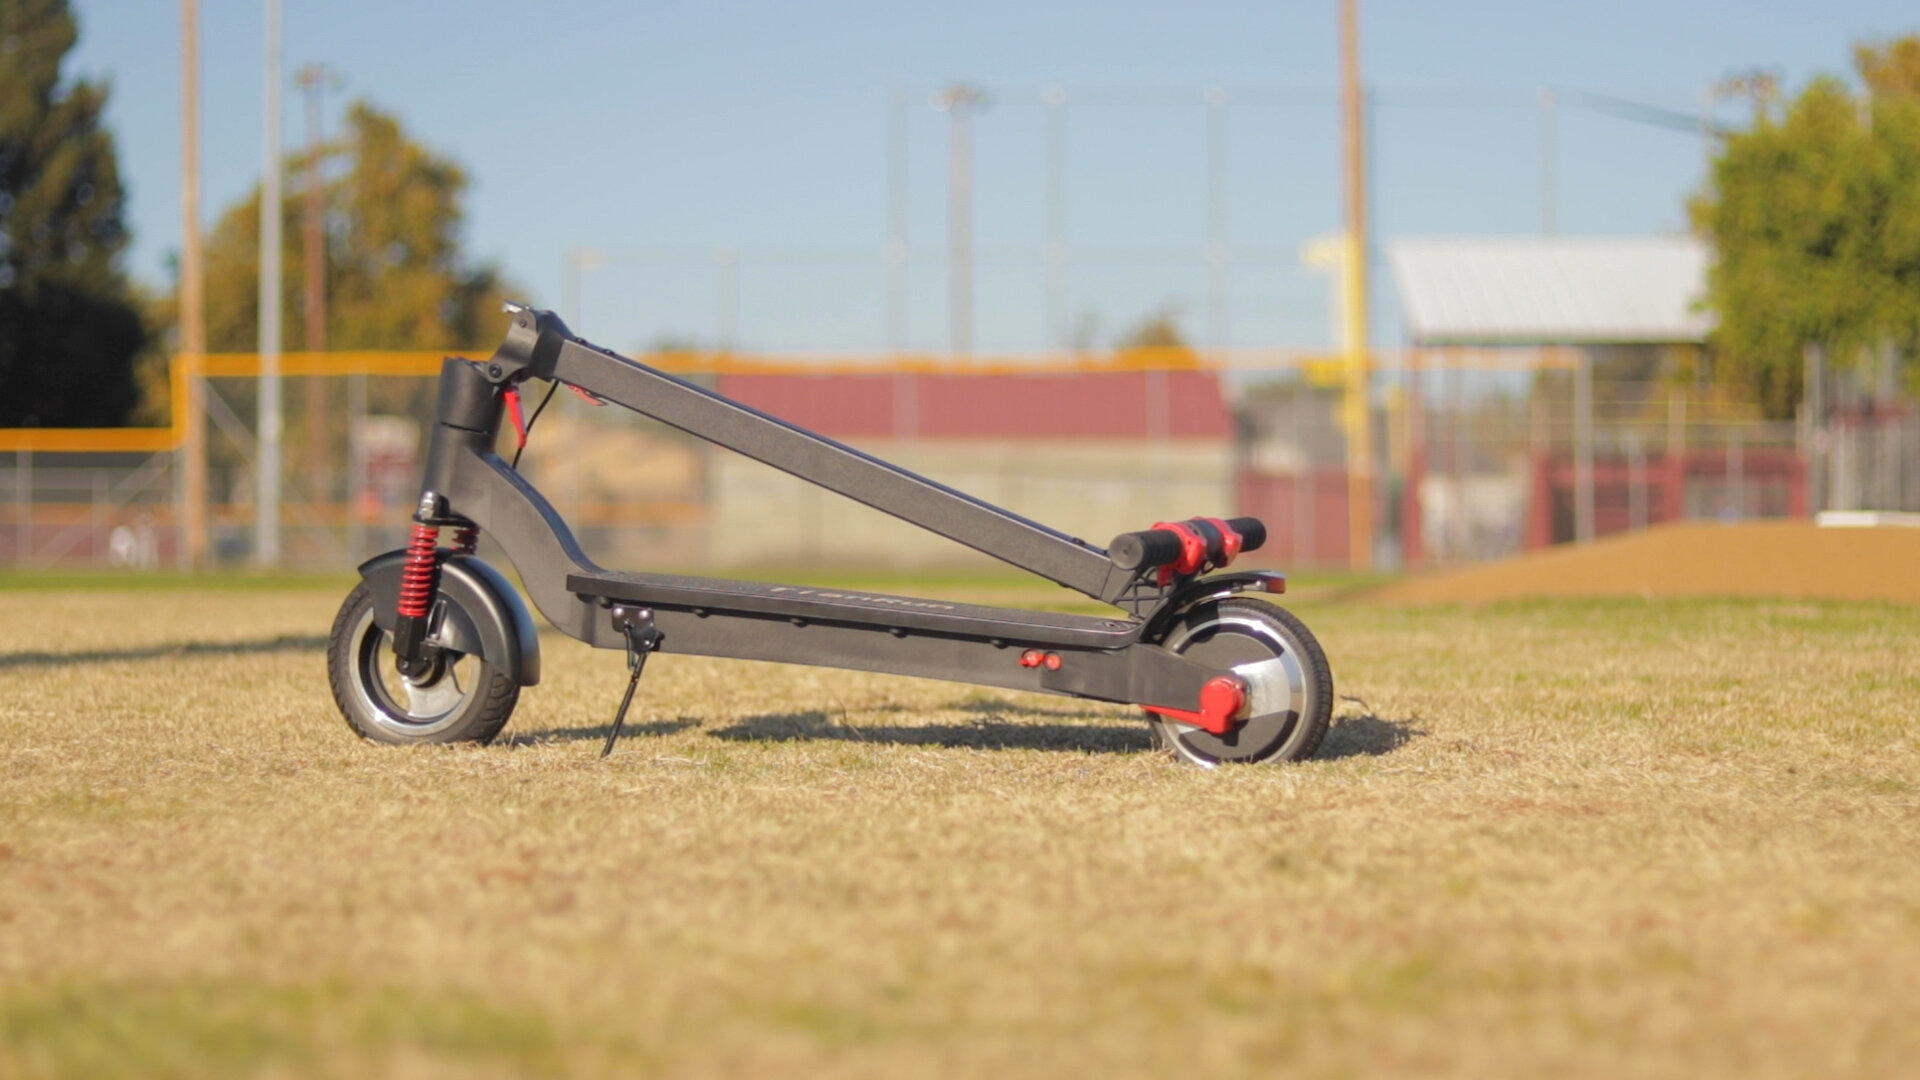 tianrun-r3s-electric-scooter-review-2019-folded.jpg